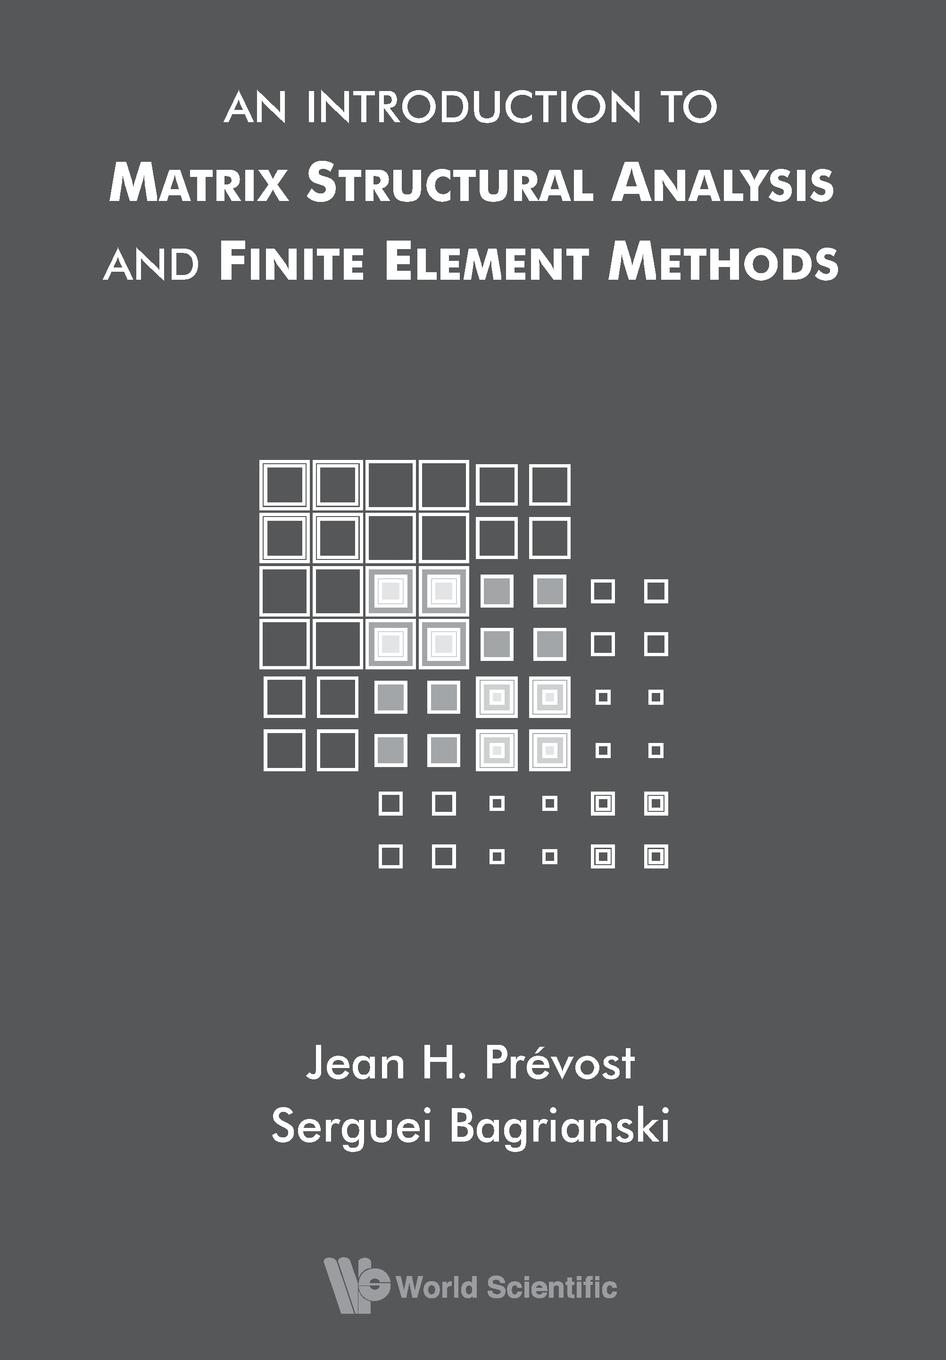 SERGUEI BAGRIANSKI, JEAN H PREVOST An Introduction to Matrix Structural Analysis and Finite Element Methods cho w s to stochastic structural dynamics application of finite element methods